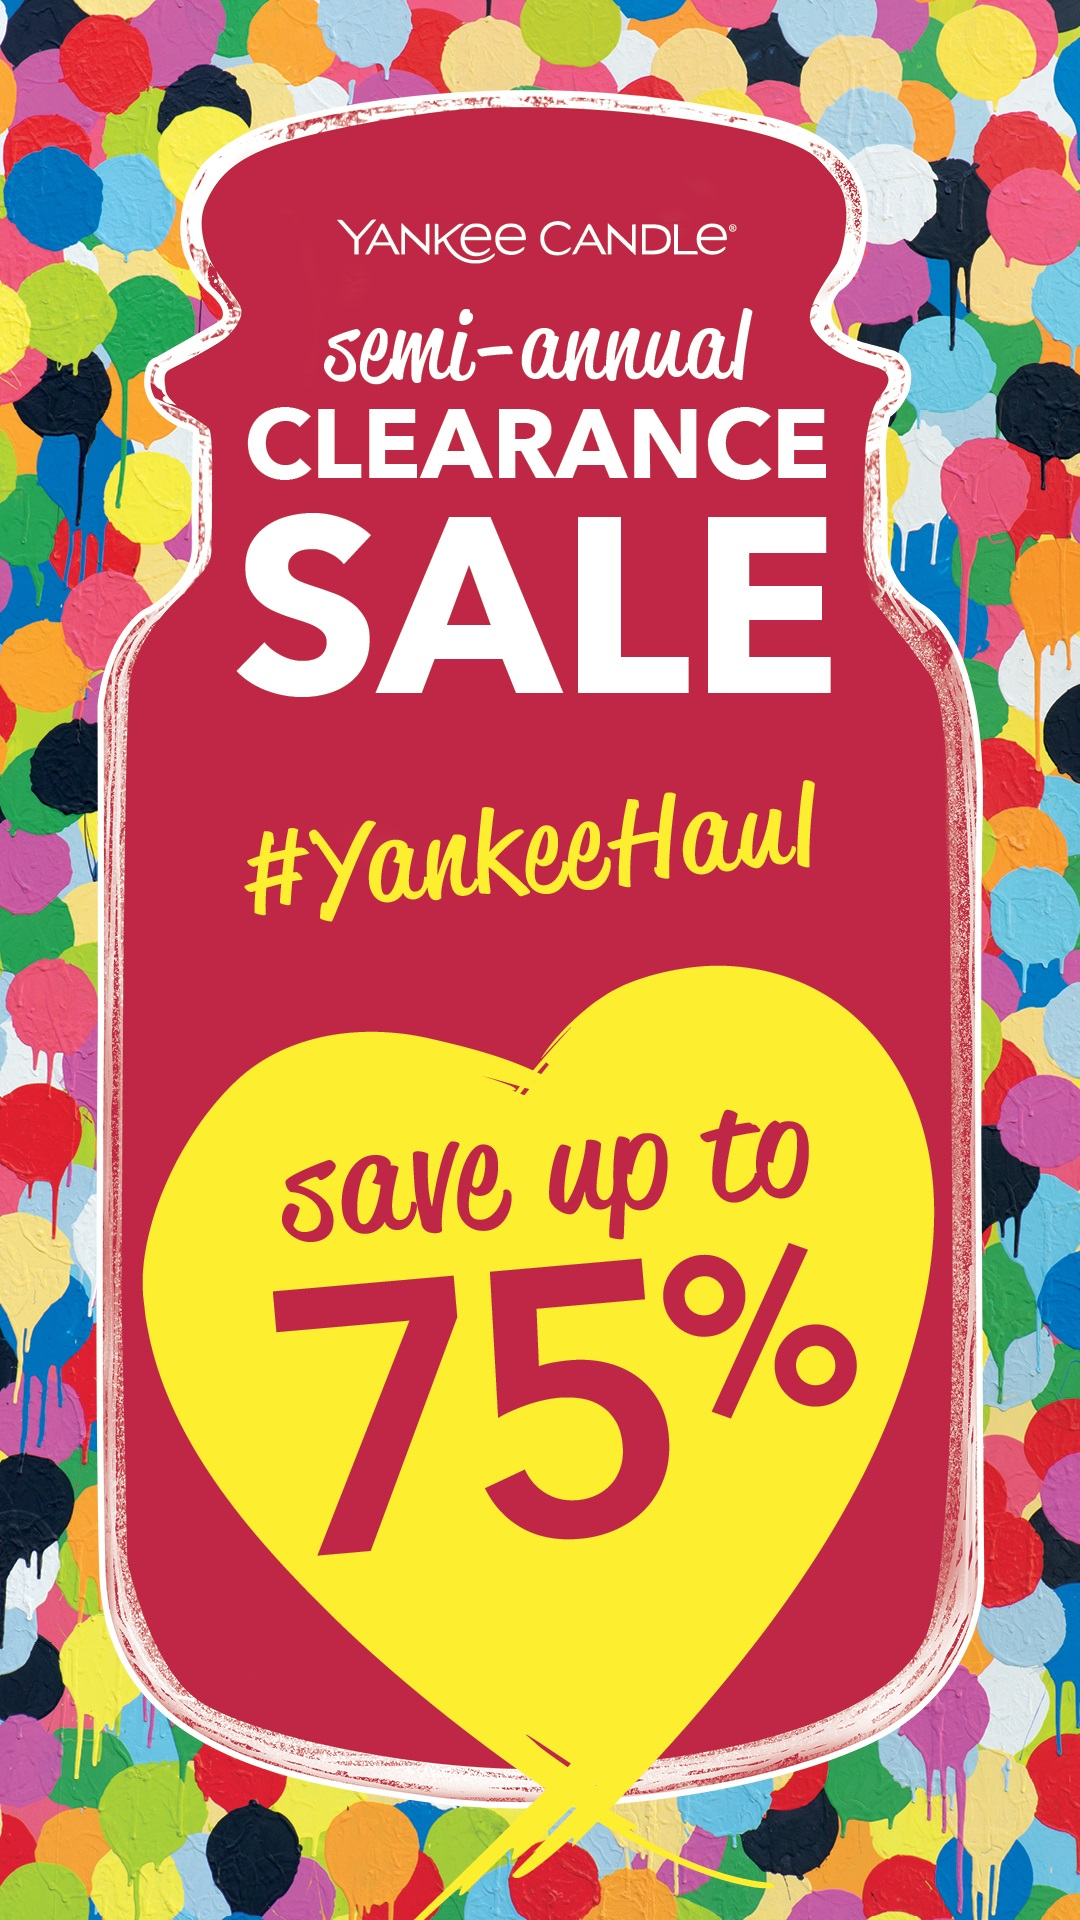 Semi Annual Clearance Sale from Yankee Candle